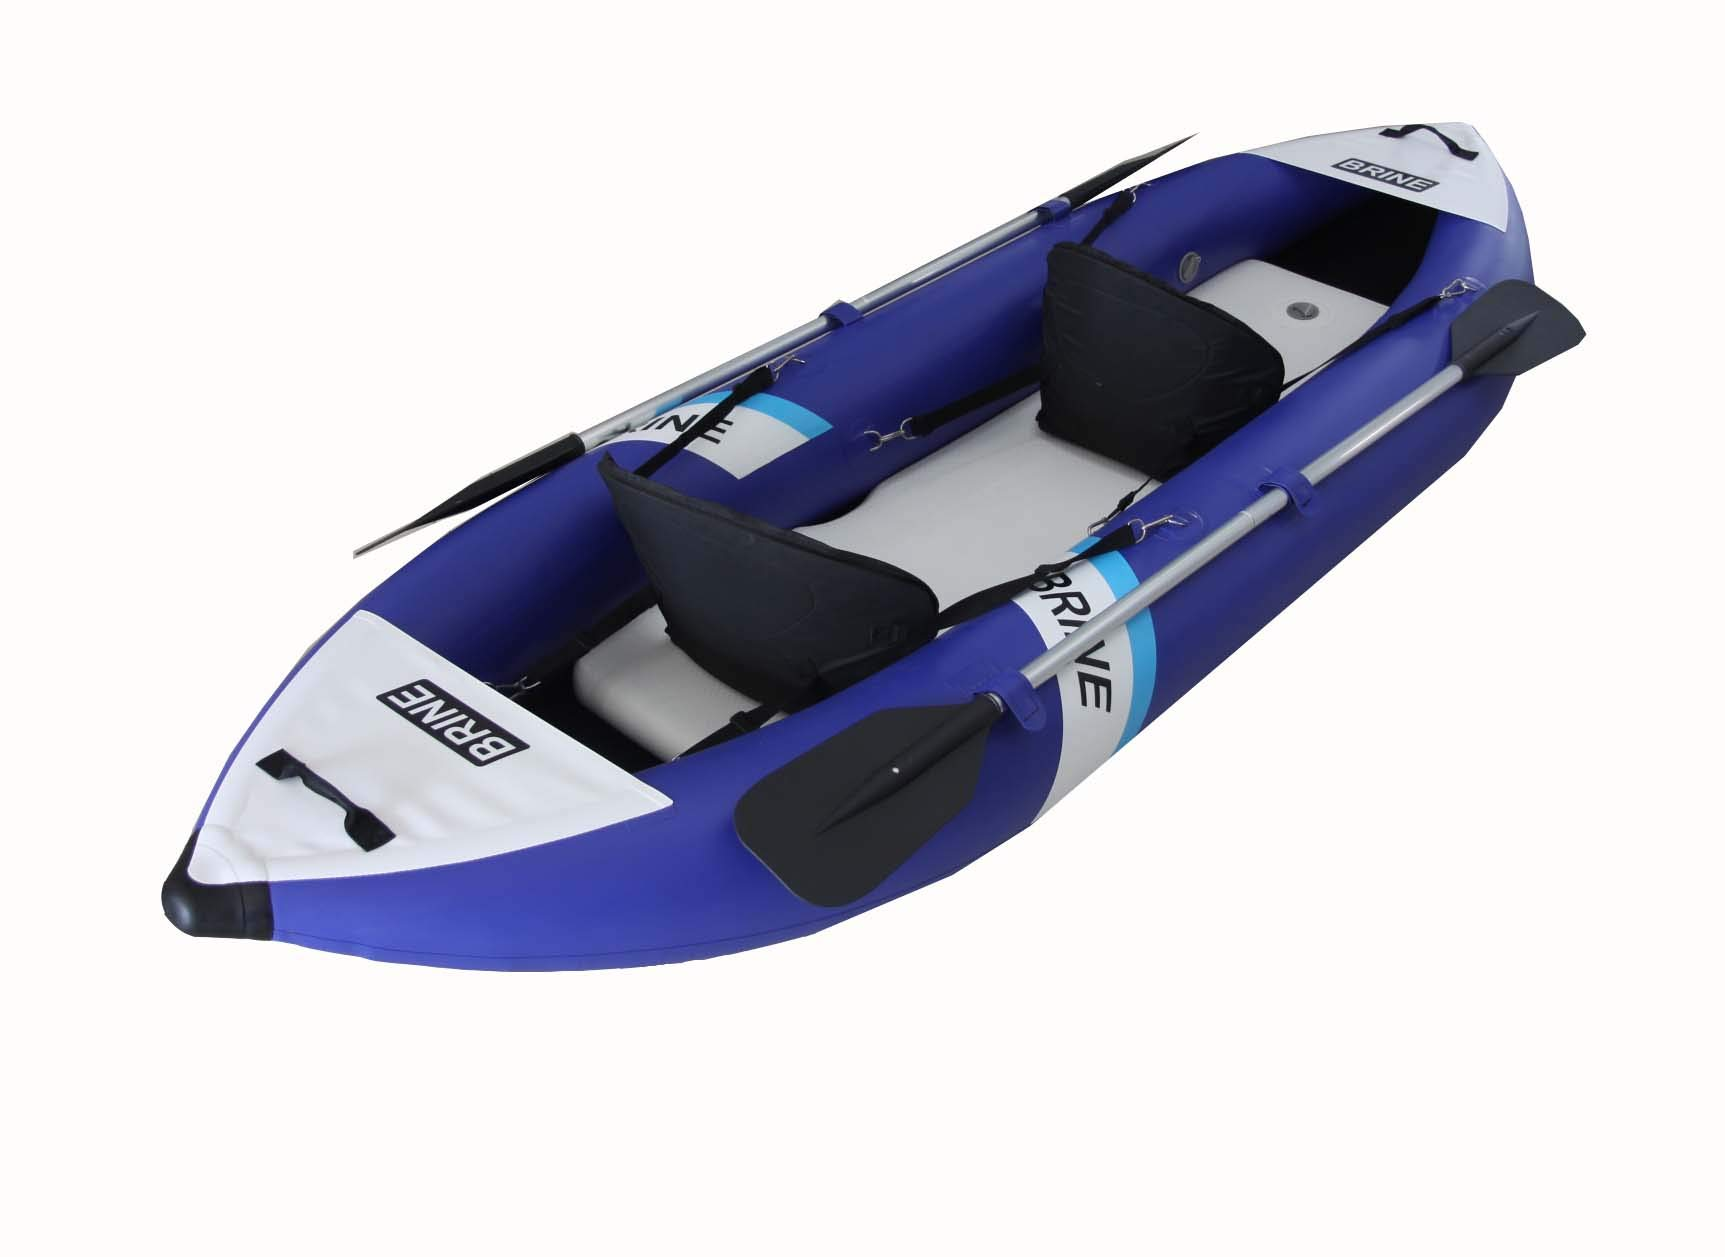 Brine Marine Inflatable Kayak 2 Person Super Stable, Allows You to Stand up and Fish. Large Capacity of 550lb. 10'6'' Long. Compact Storage Bag, Pump, Paddles & Accessories Included by Brine Marine